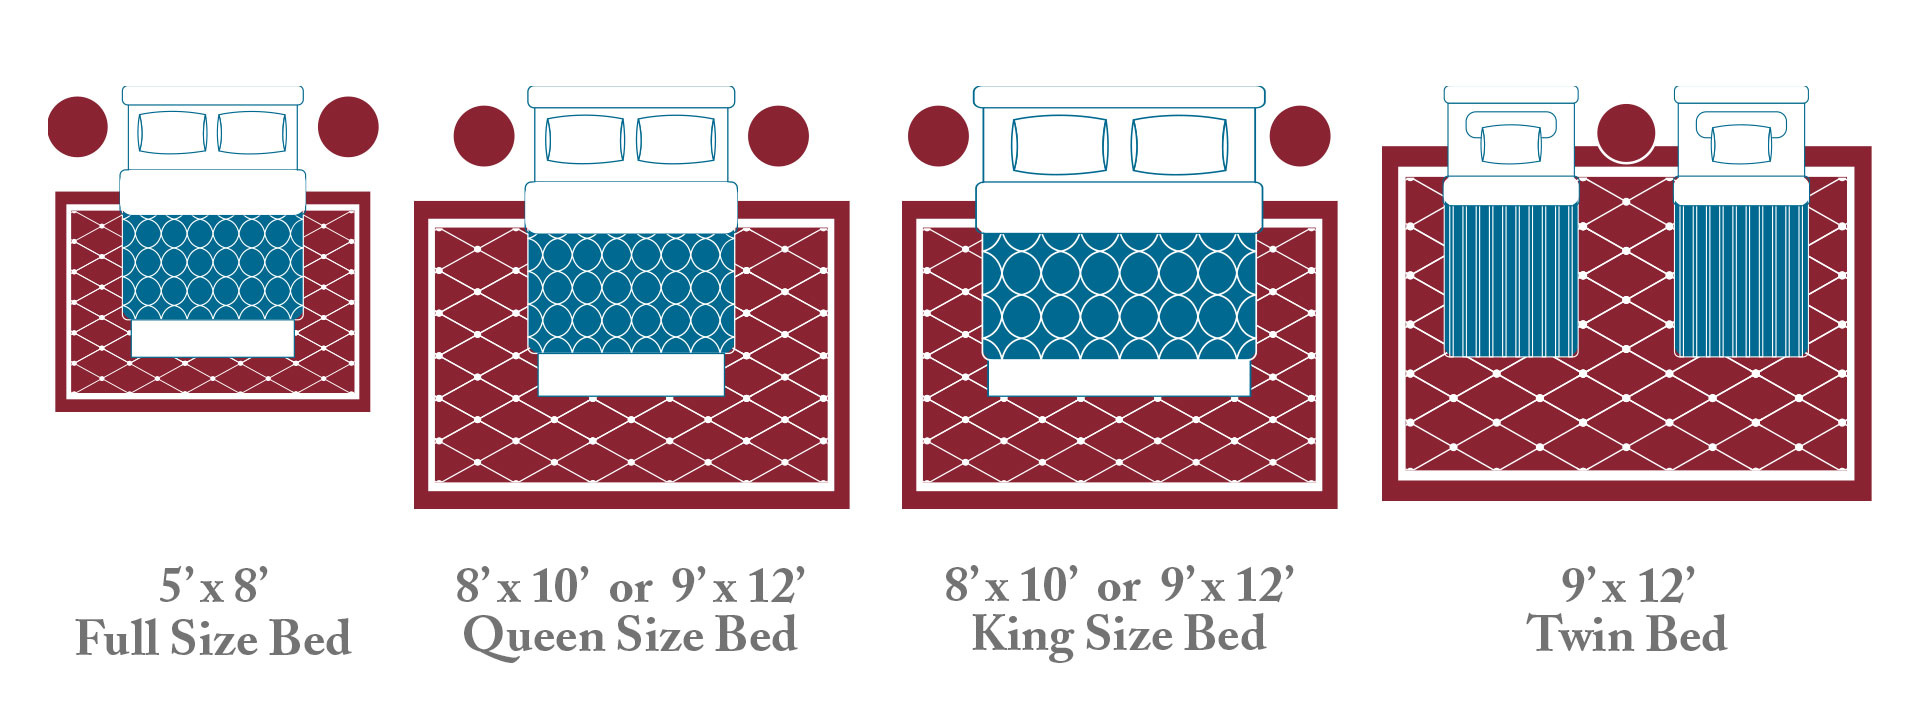 Bedroom Area Rug Layout Tips